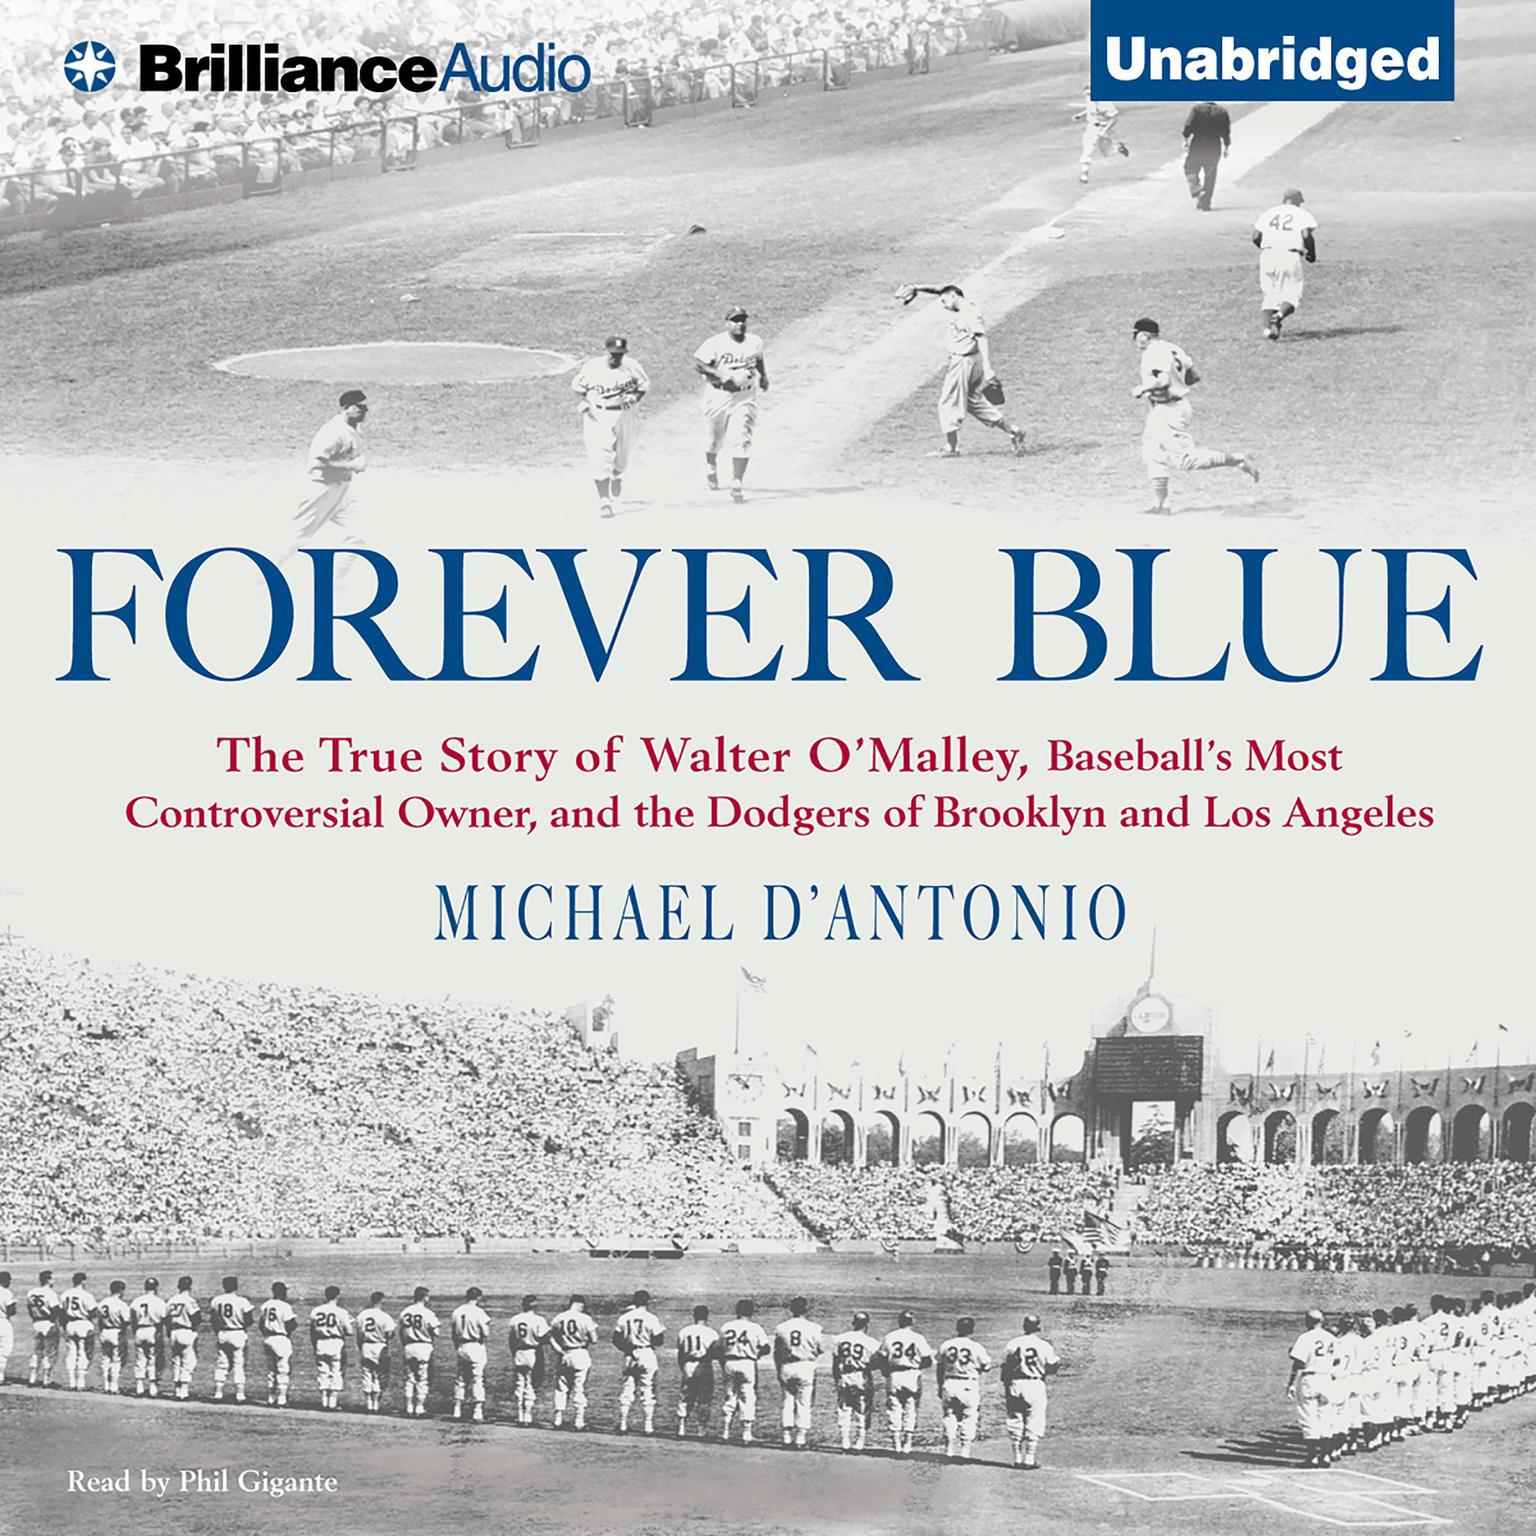 Printable Forever Blue: The True Story of Walter O'Malley, Baseball's Most Controversial Owner and the Dodgers of Brooklyn and Los Angeles Audiobook Cover Art